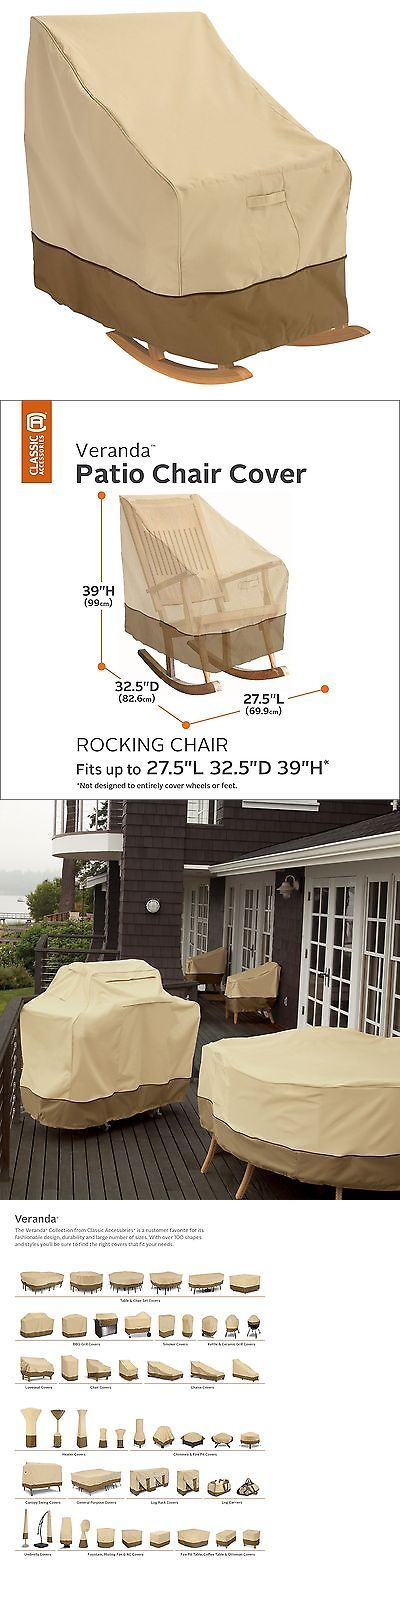 Outdoor Furniture Covers 177031: Classic Accessories Veranda Patio Rocking Chair Cover - Durable And Water Res... -> BUY IT NOW ONLY: $30.91 on eBay!